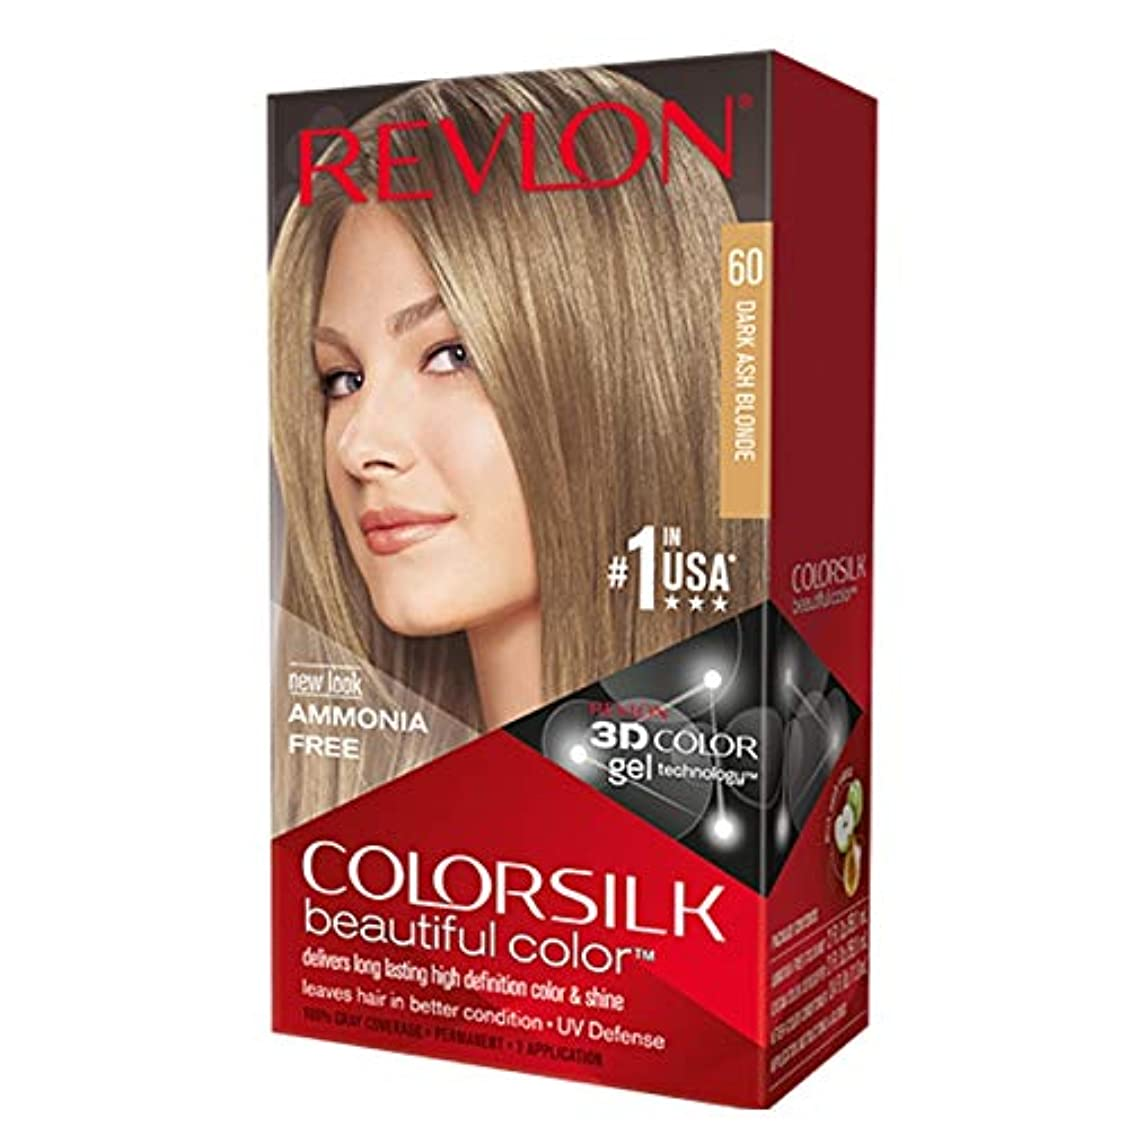 欠乏散歩性格海外直送肘 Revlon Colorsilk Natural Hair Color 6A Dark Ash Blonde, 6A Dark Ash Blonde each